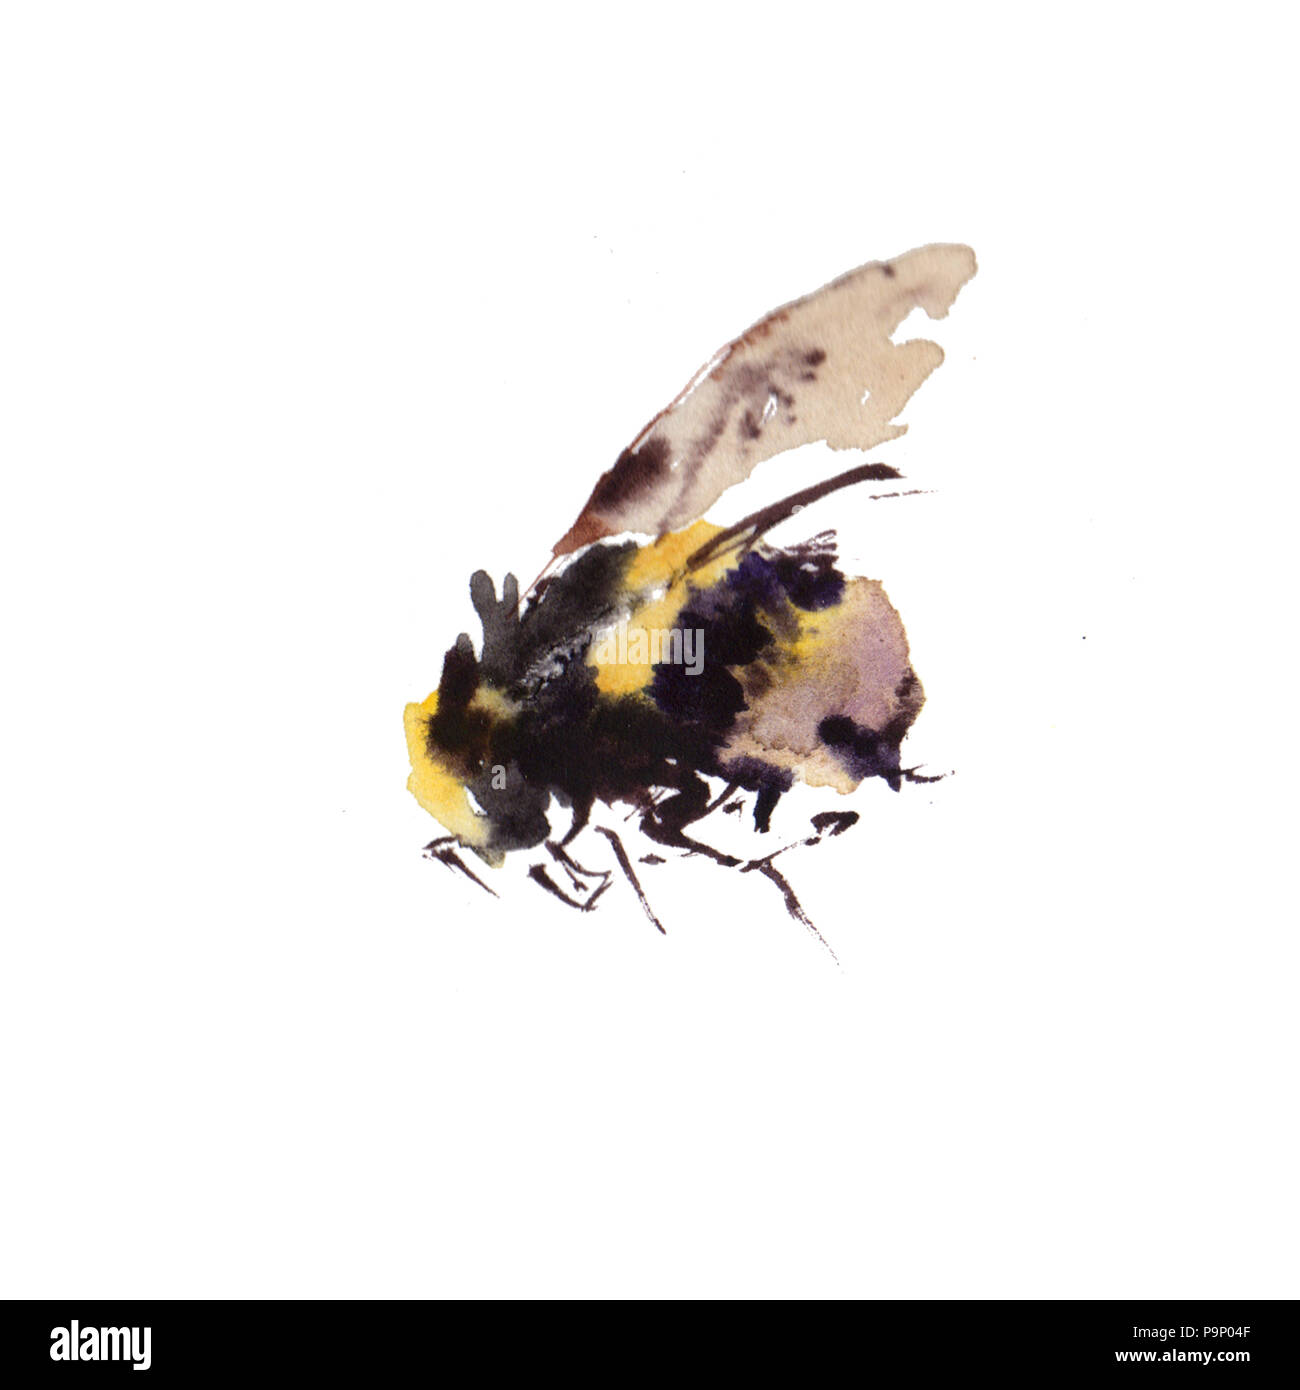 Watercolor bees isolated on white background. hand drawn watercolor illustration - Stock Image